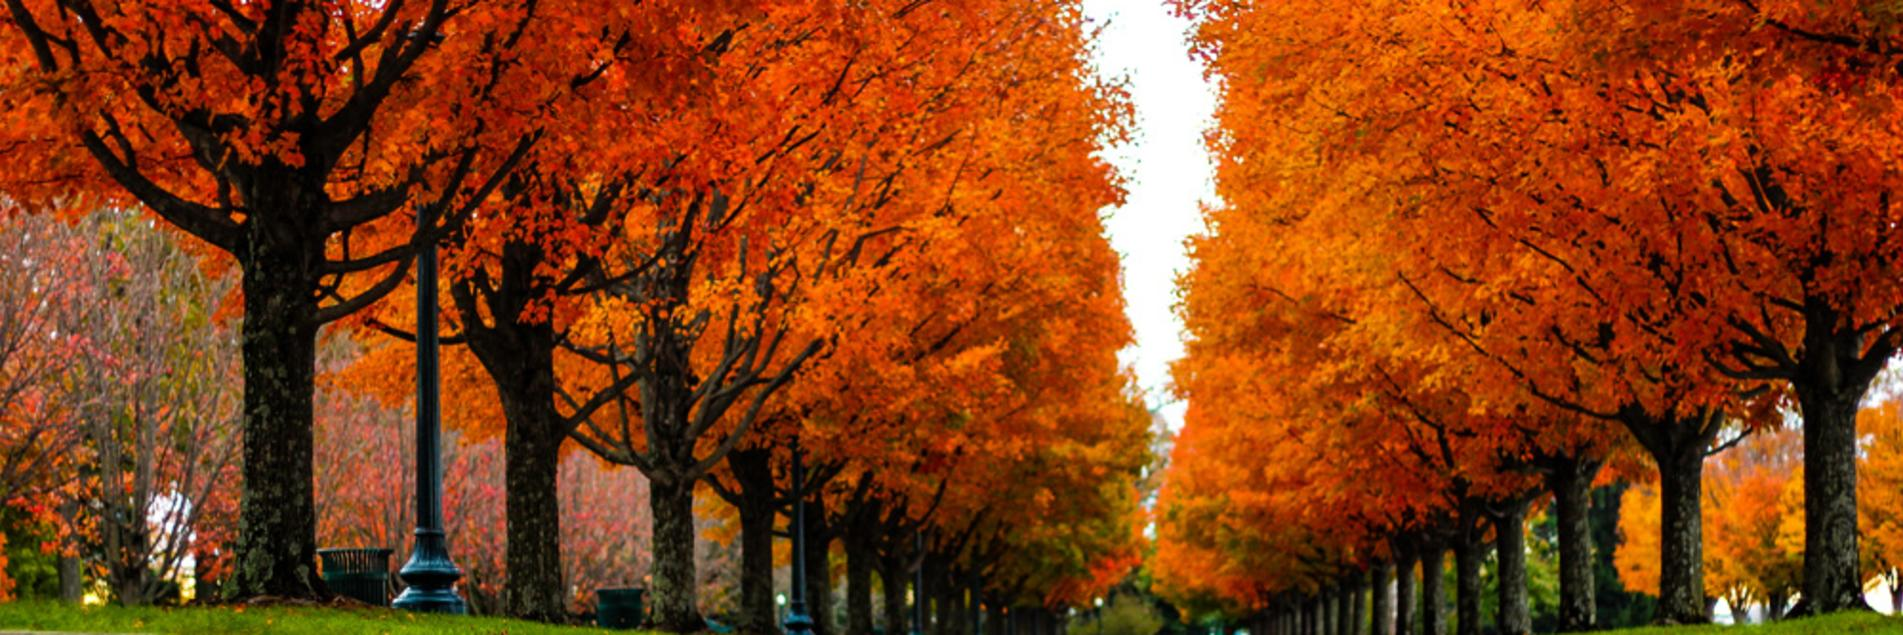 Fall in Lexington, Kentucky